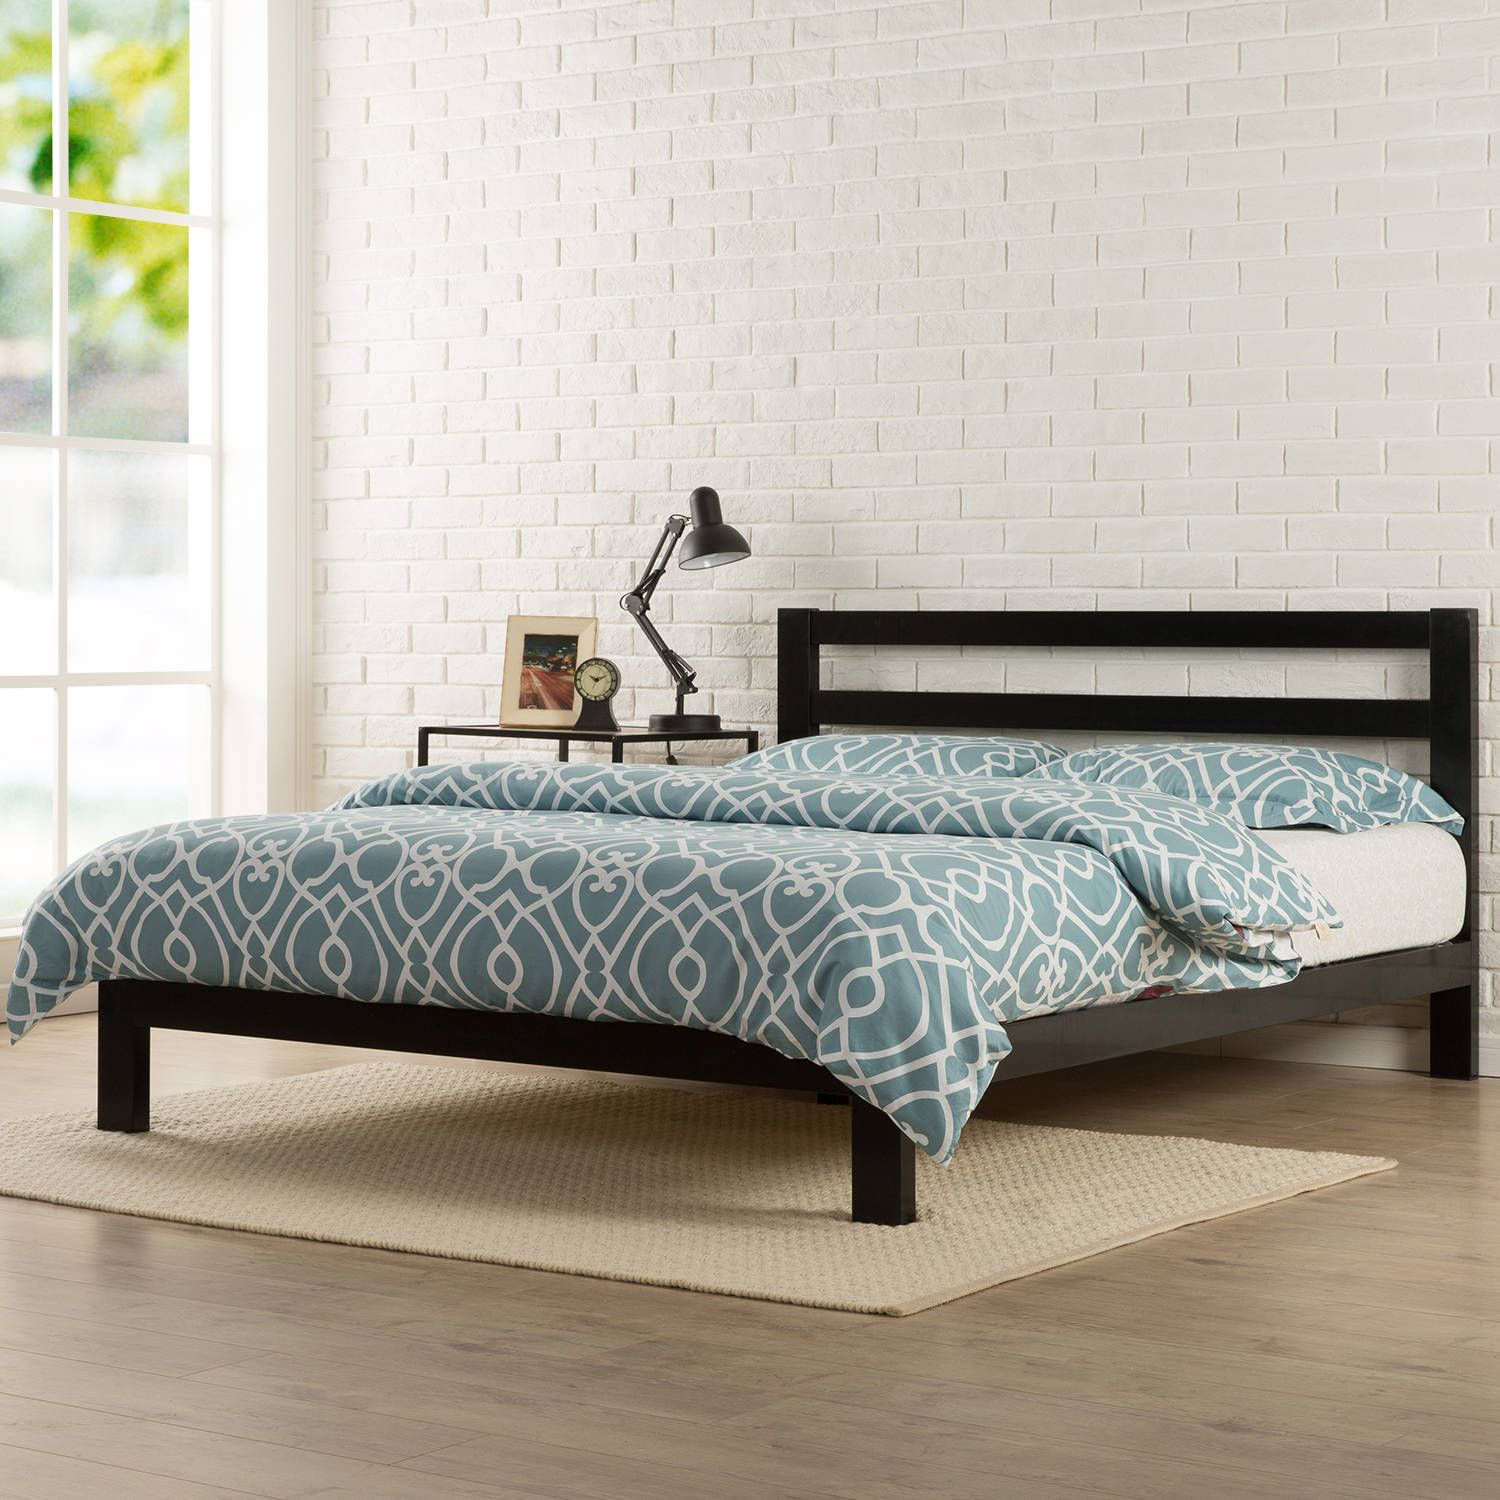 bed htm metal platform p